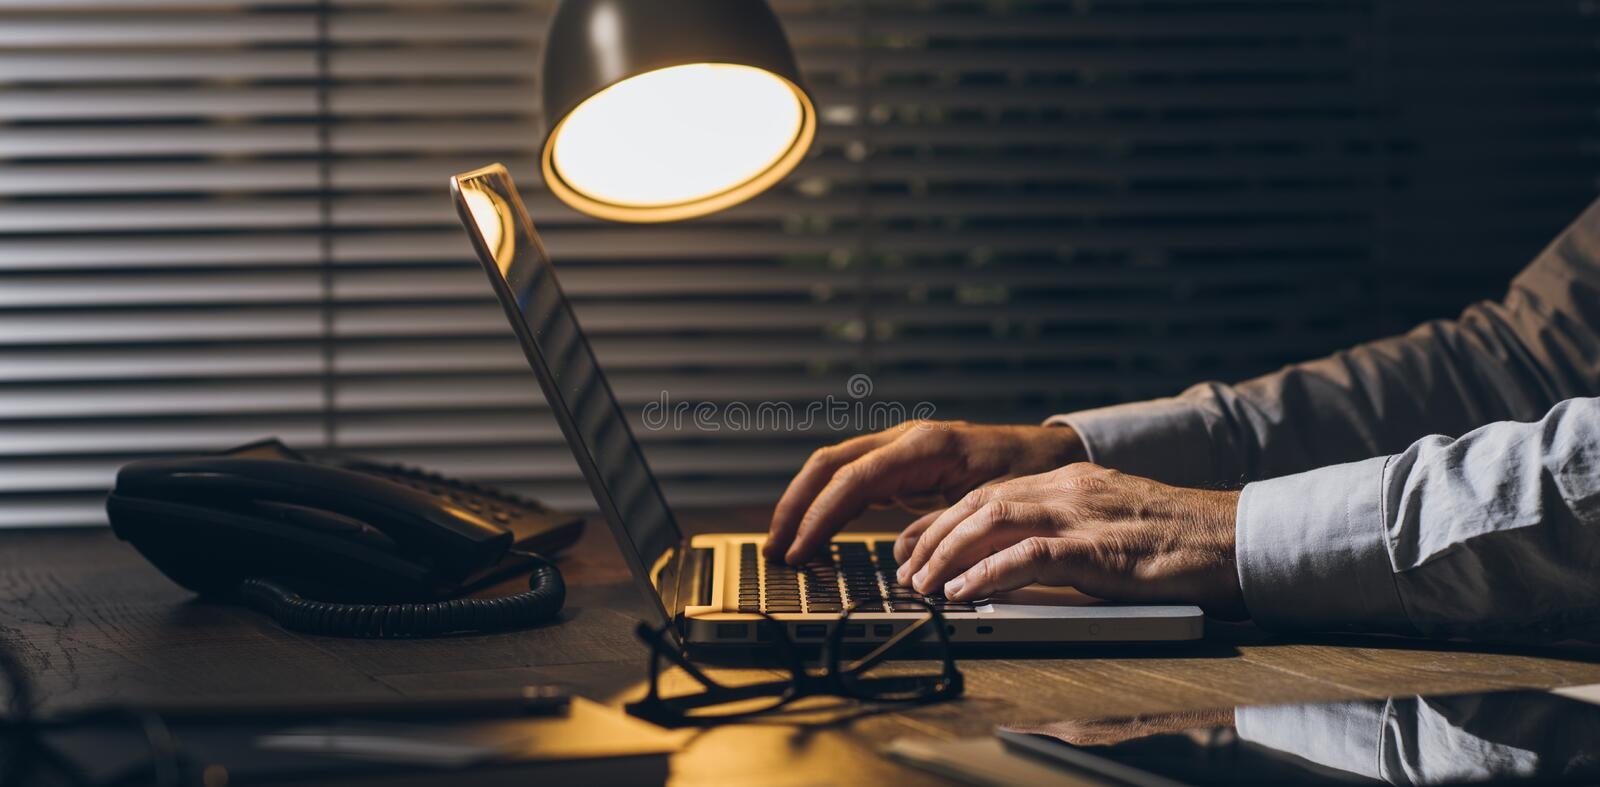 Business and deadlines. Corporate businessman working at office desk with his laptop late at night: working overtime and deadlines concept stock photos